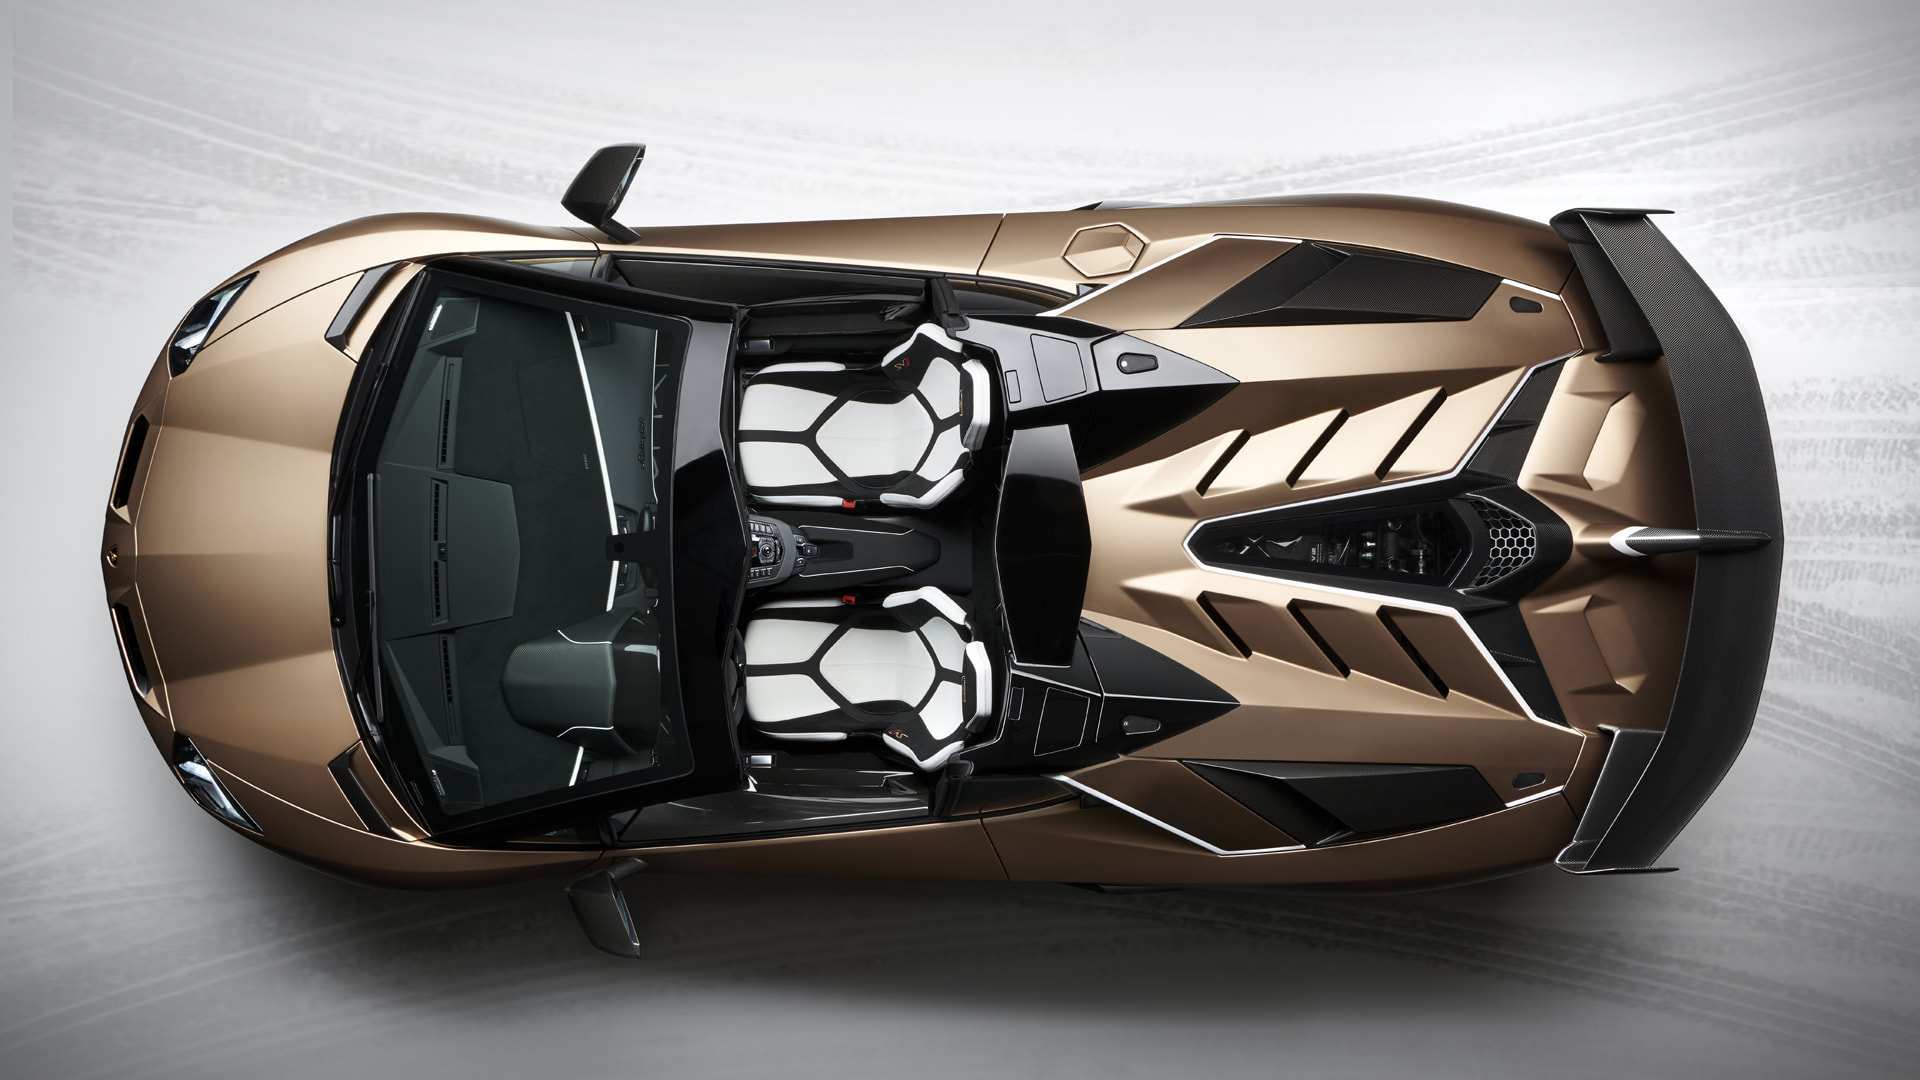 Lamborghini Aventador Svj Roadster Unveiled At The Geneva Motor Show